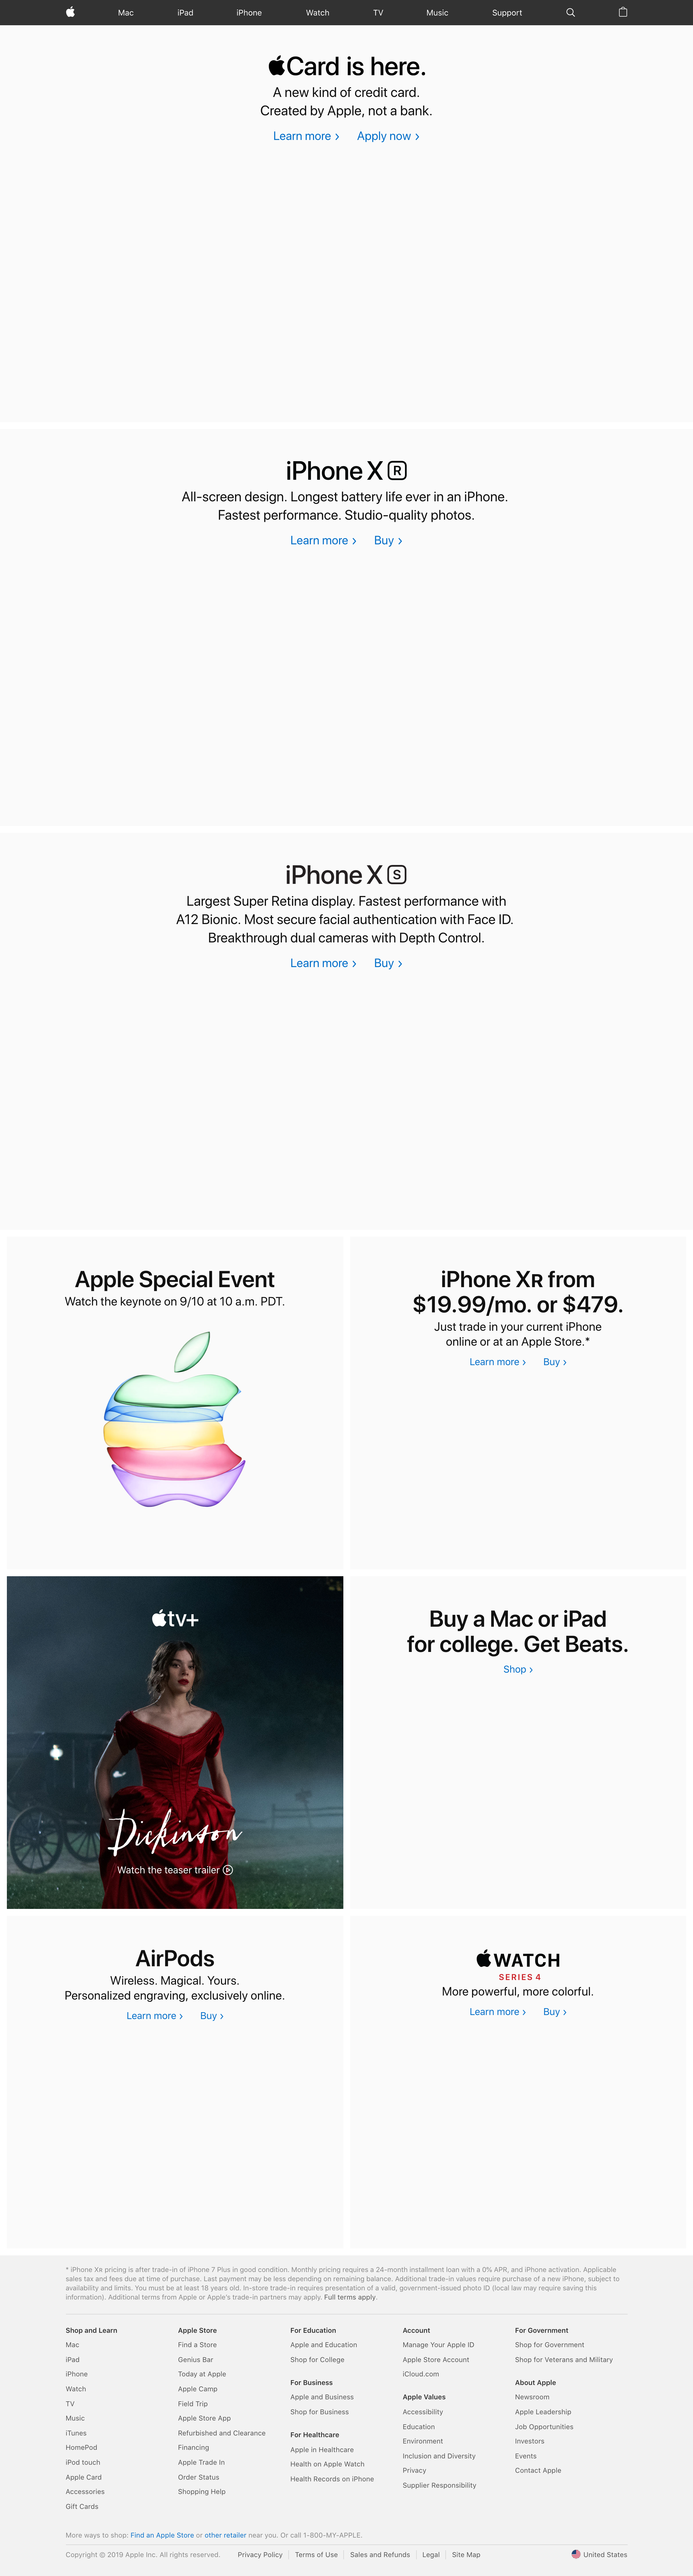 Apple.com (without product images)